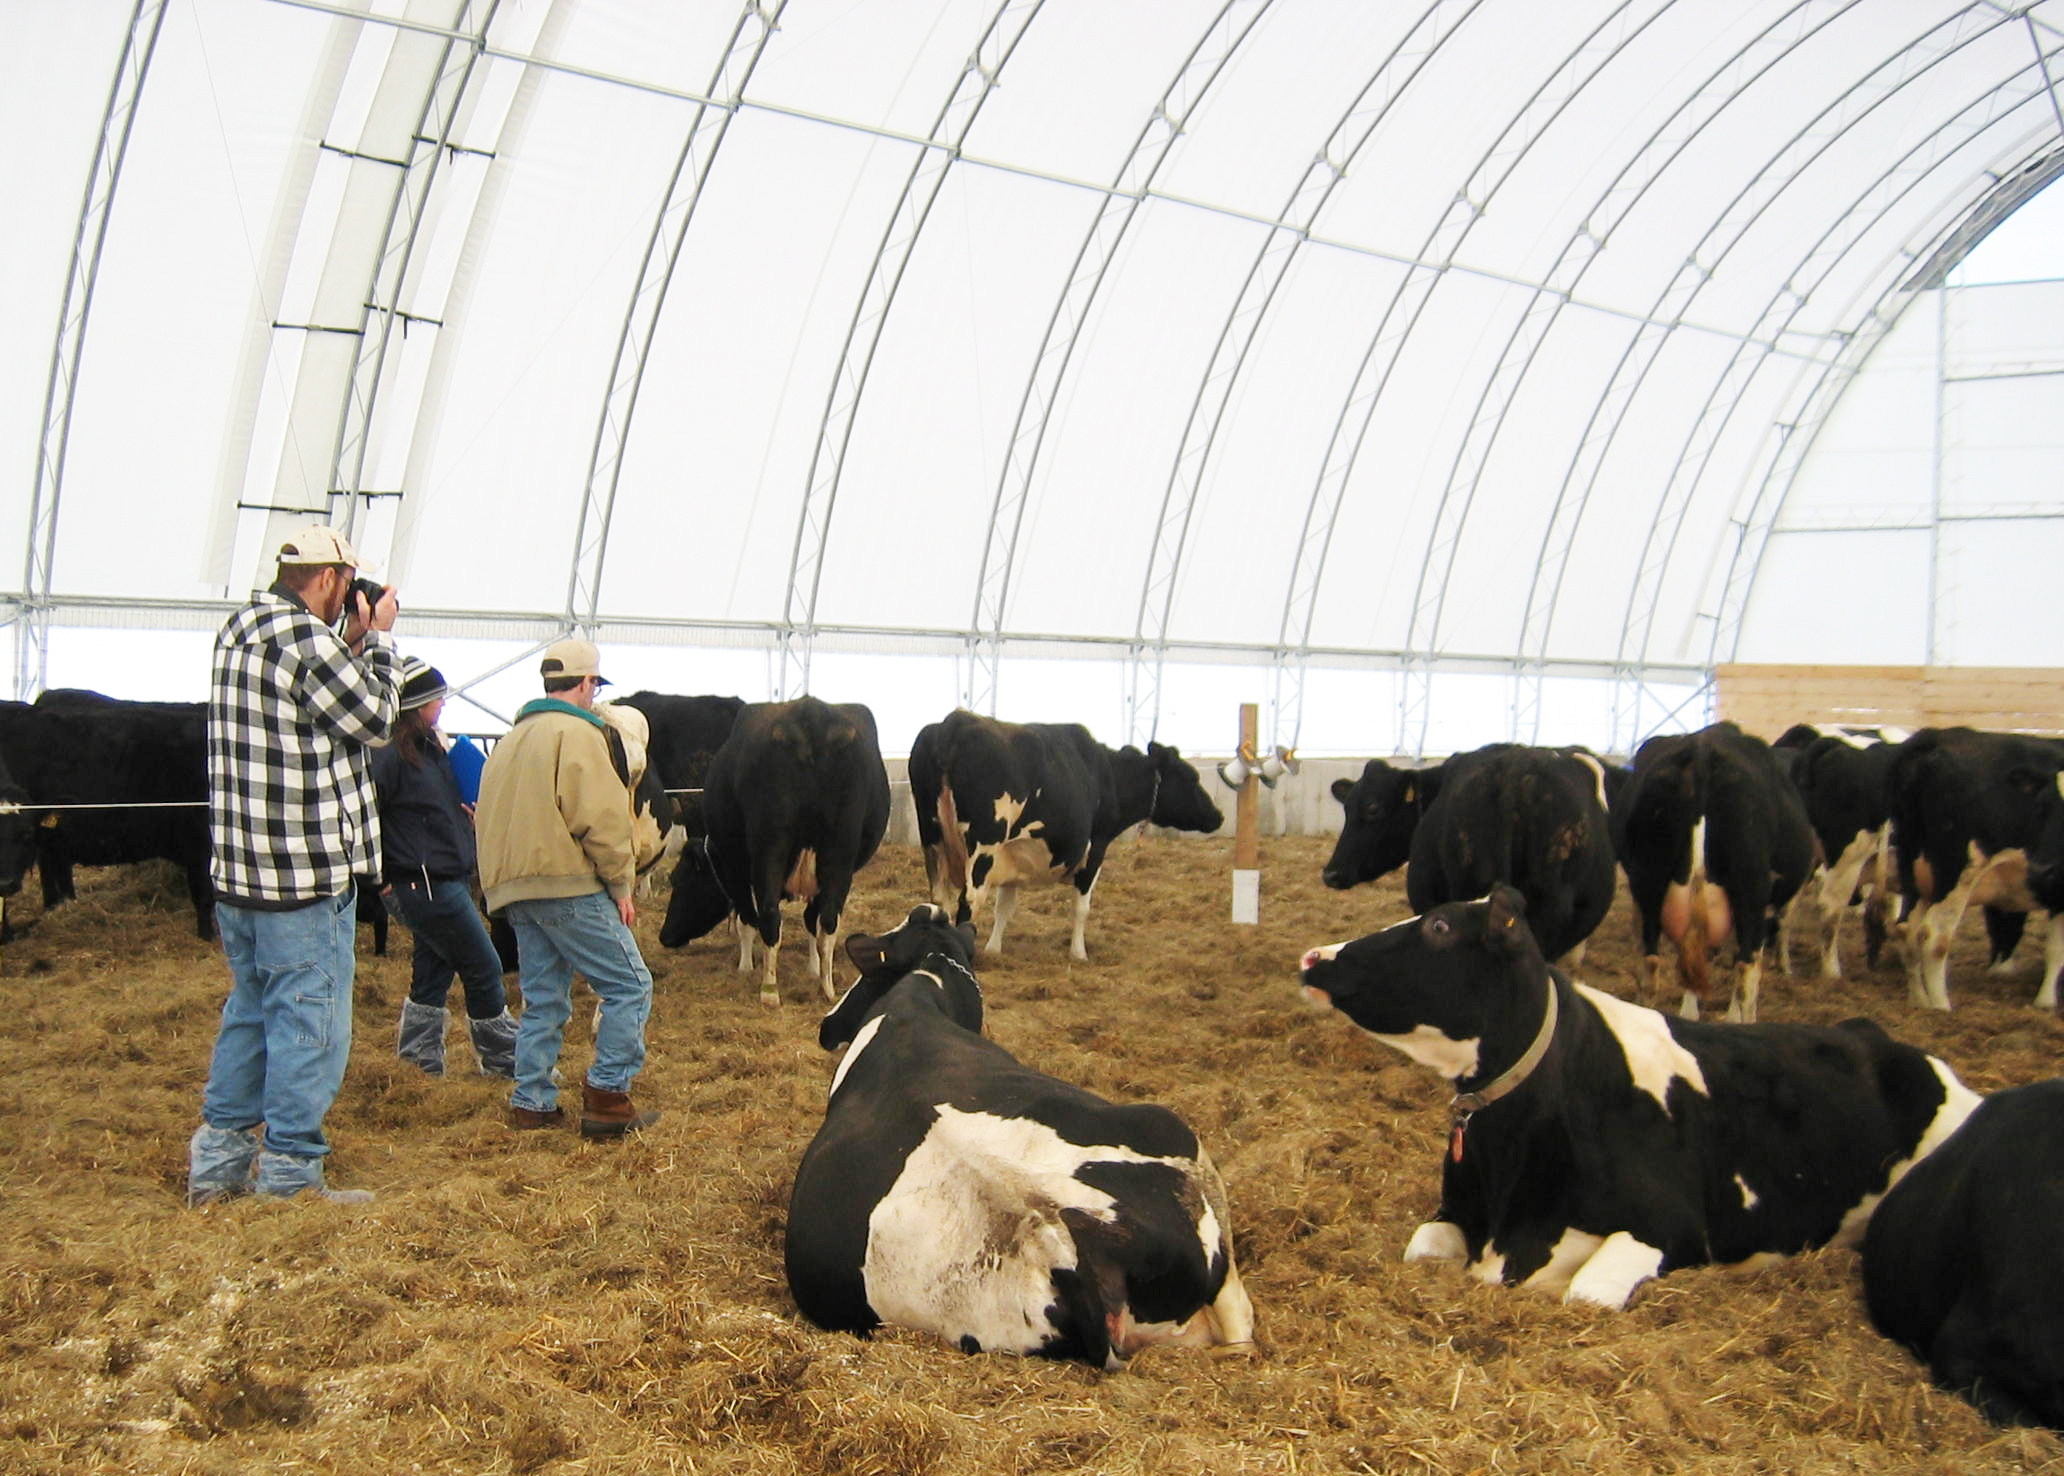 Shed Greenhouse Plans Consider Deep Pack Barns For Cow Comfort And Manure